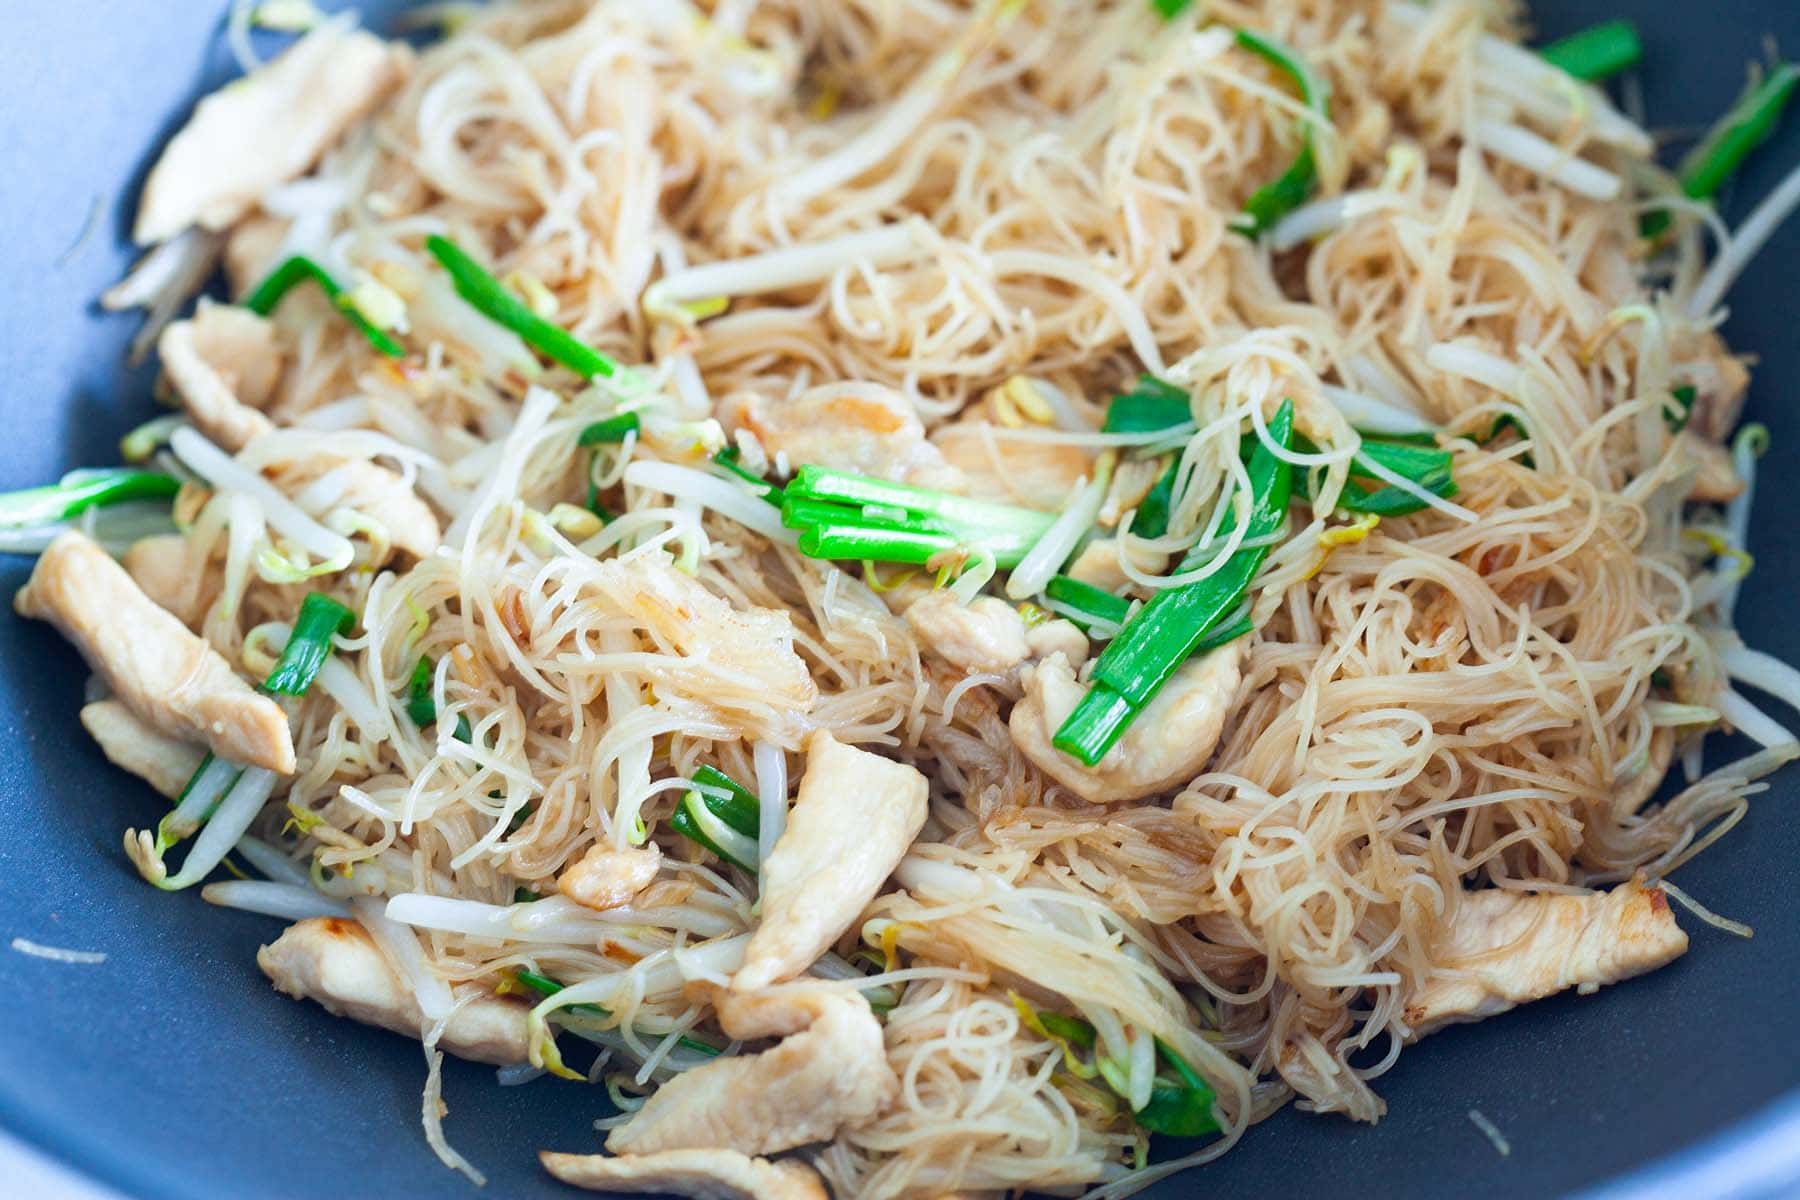 Rice vermicelli, stir-fried in a skillet.